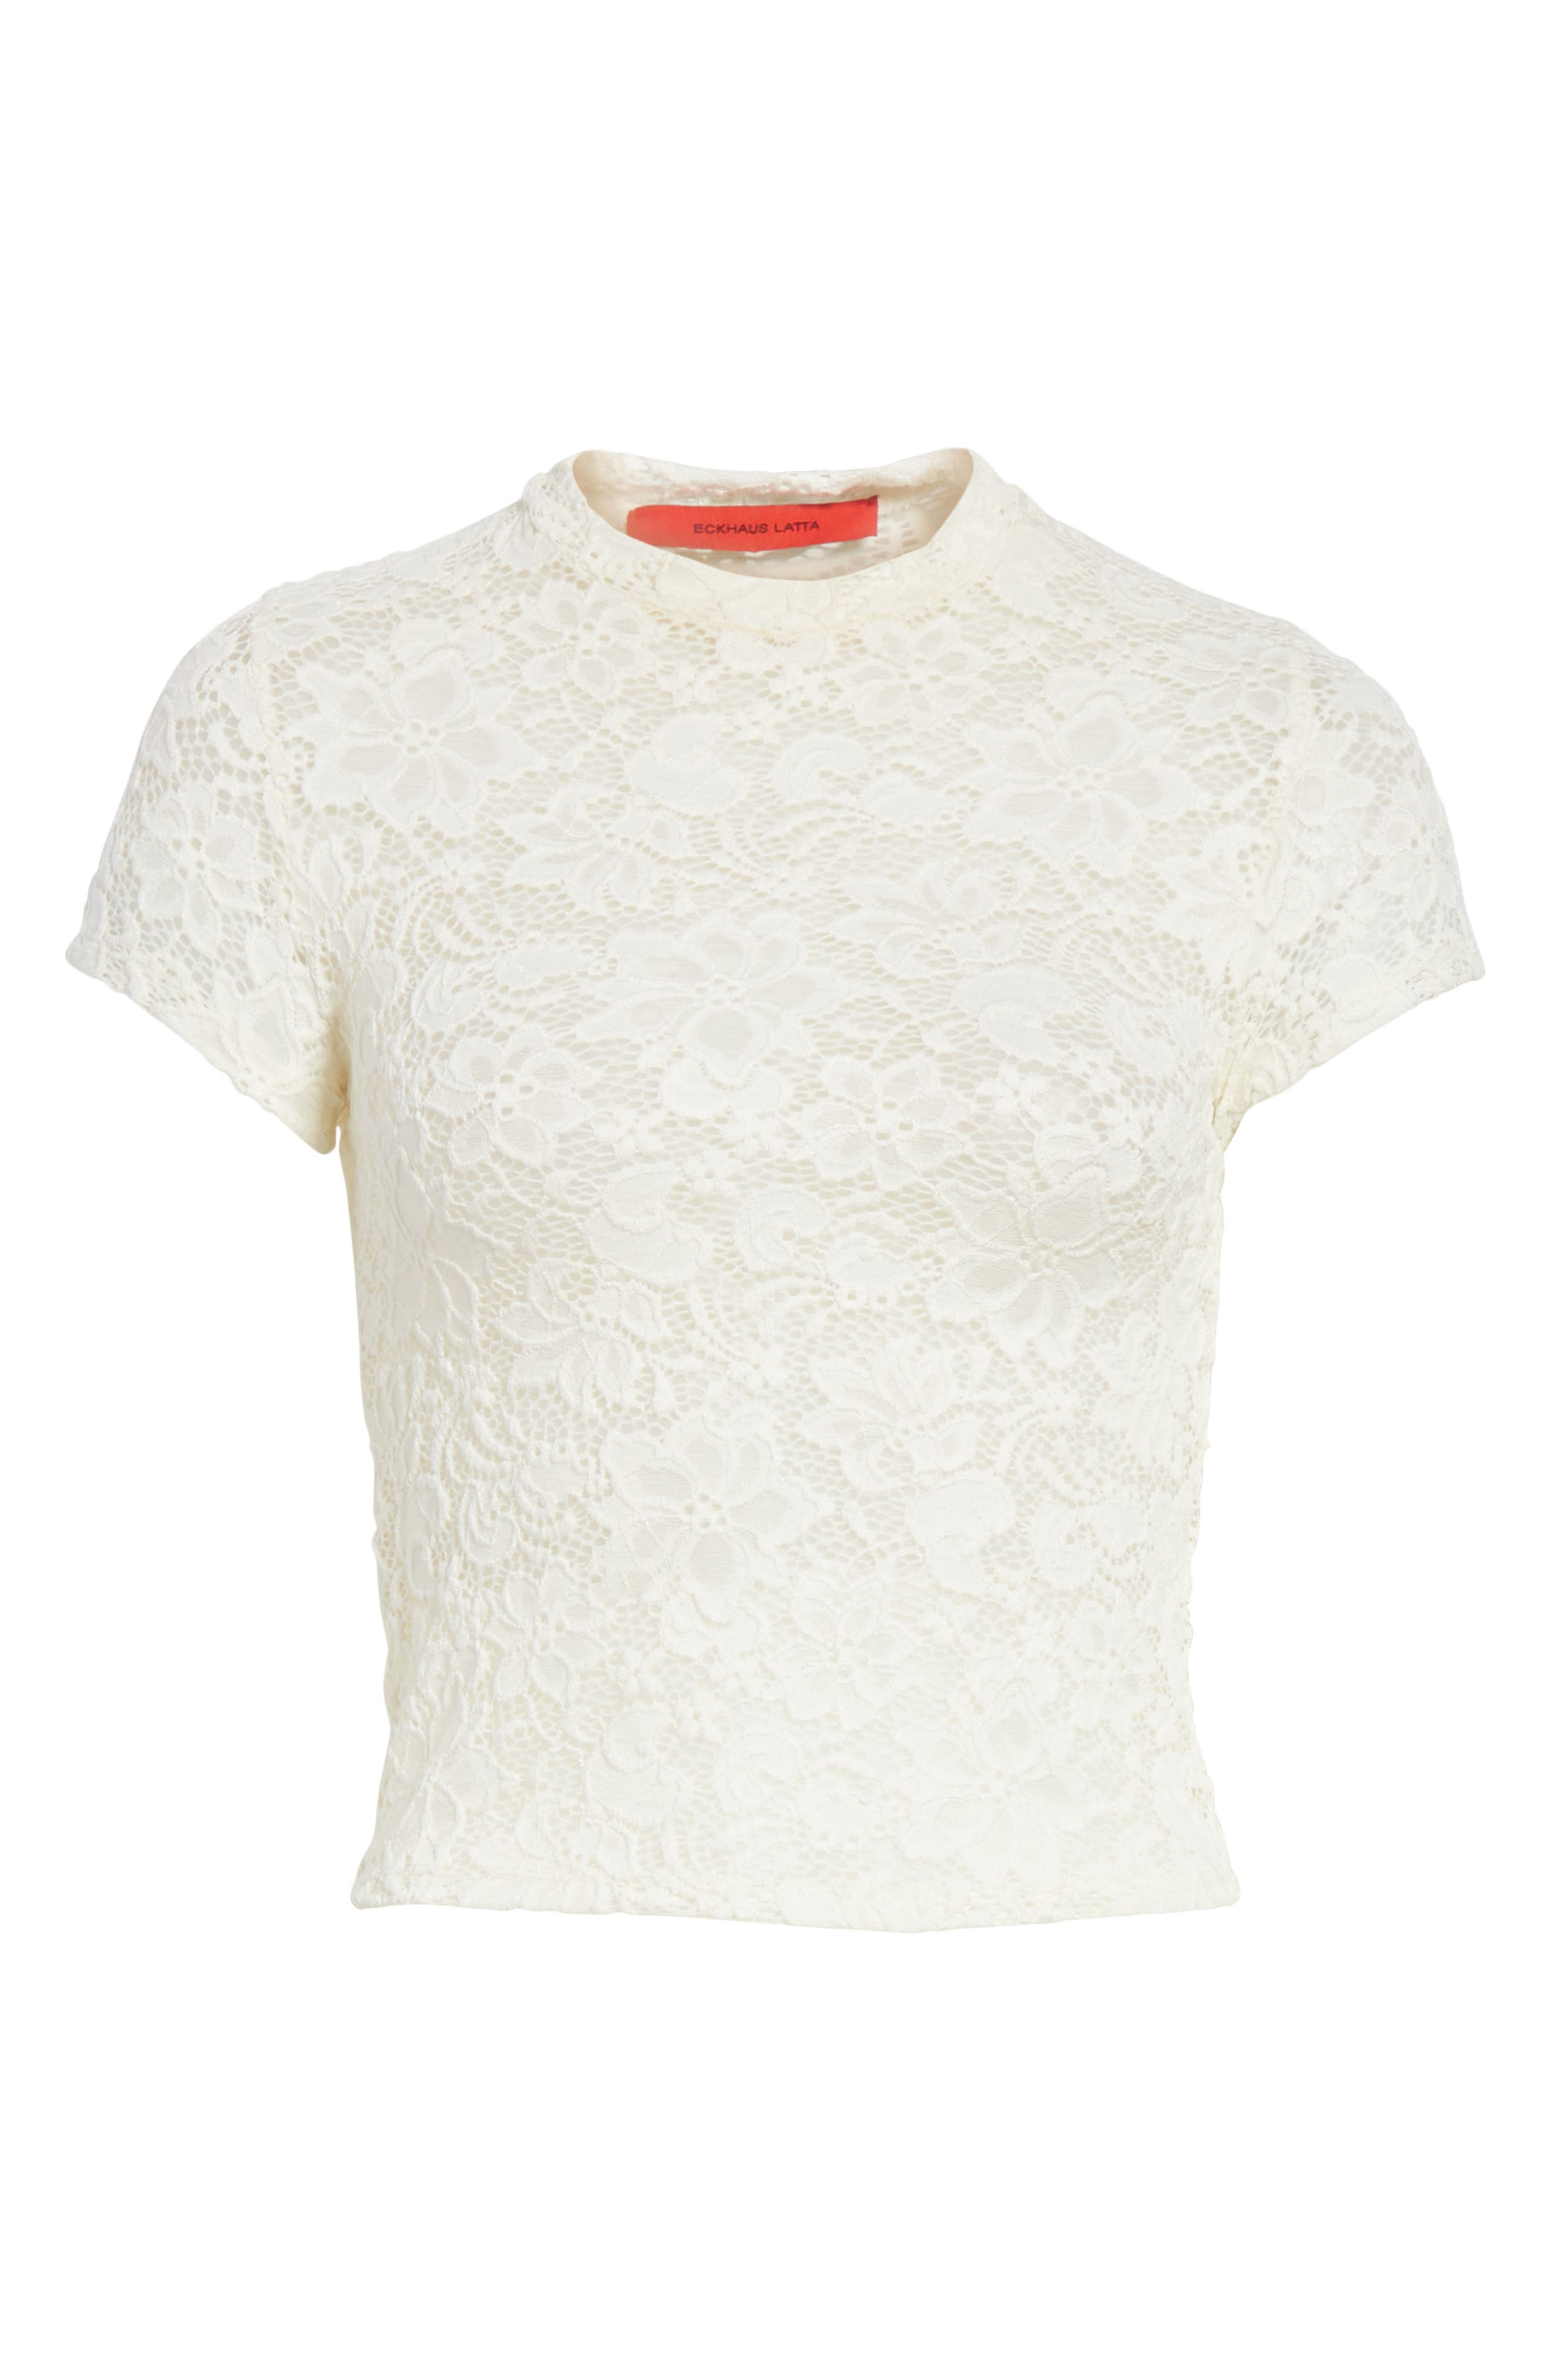 Dog God Stretch Lace Tee,                             Alternate thumbnail 6, color,                             100